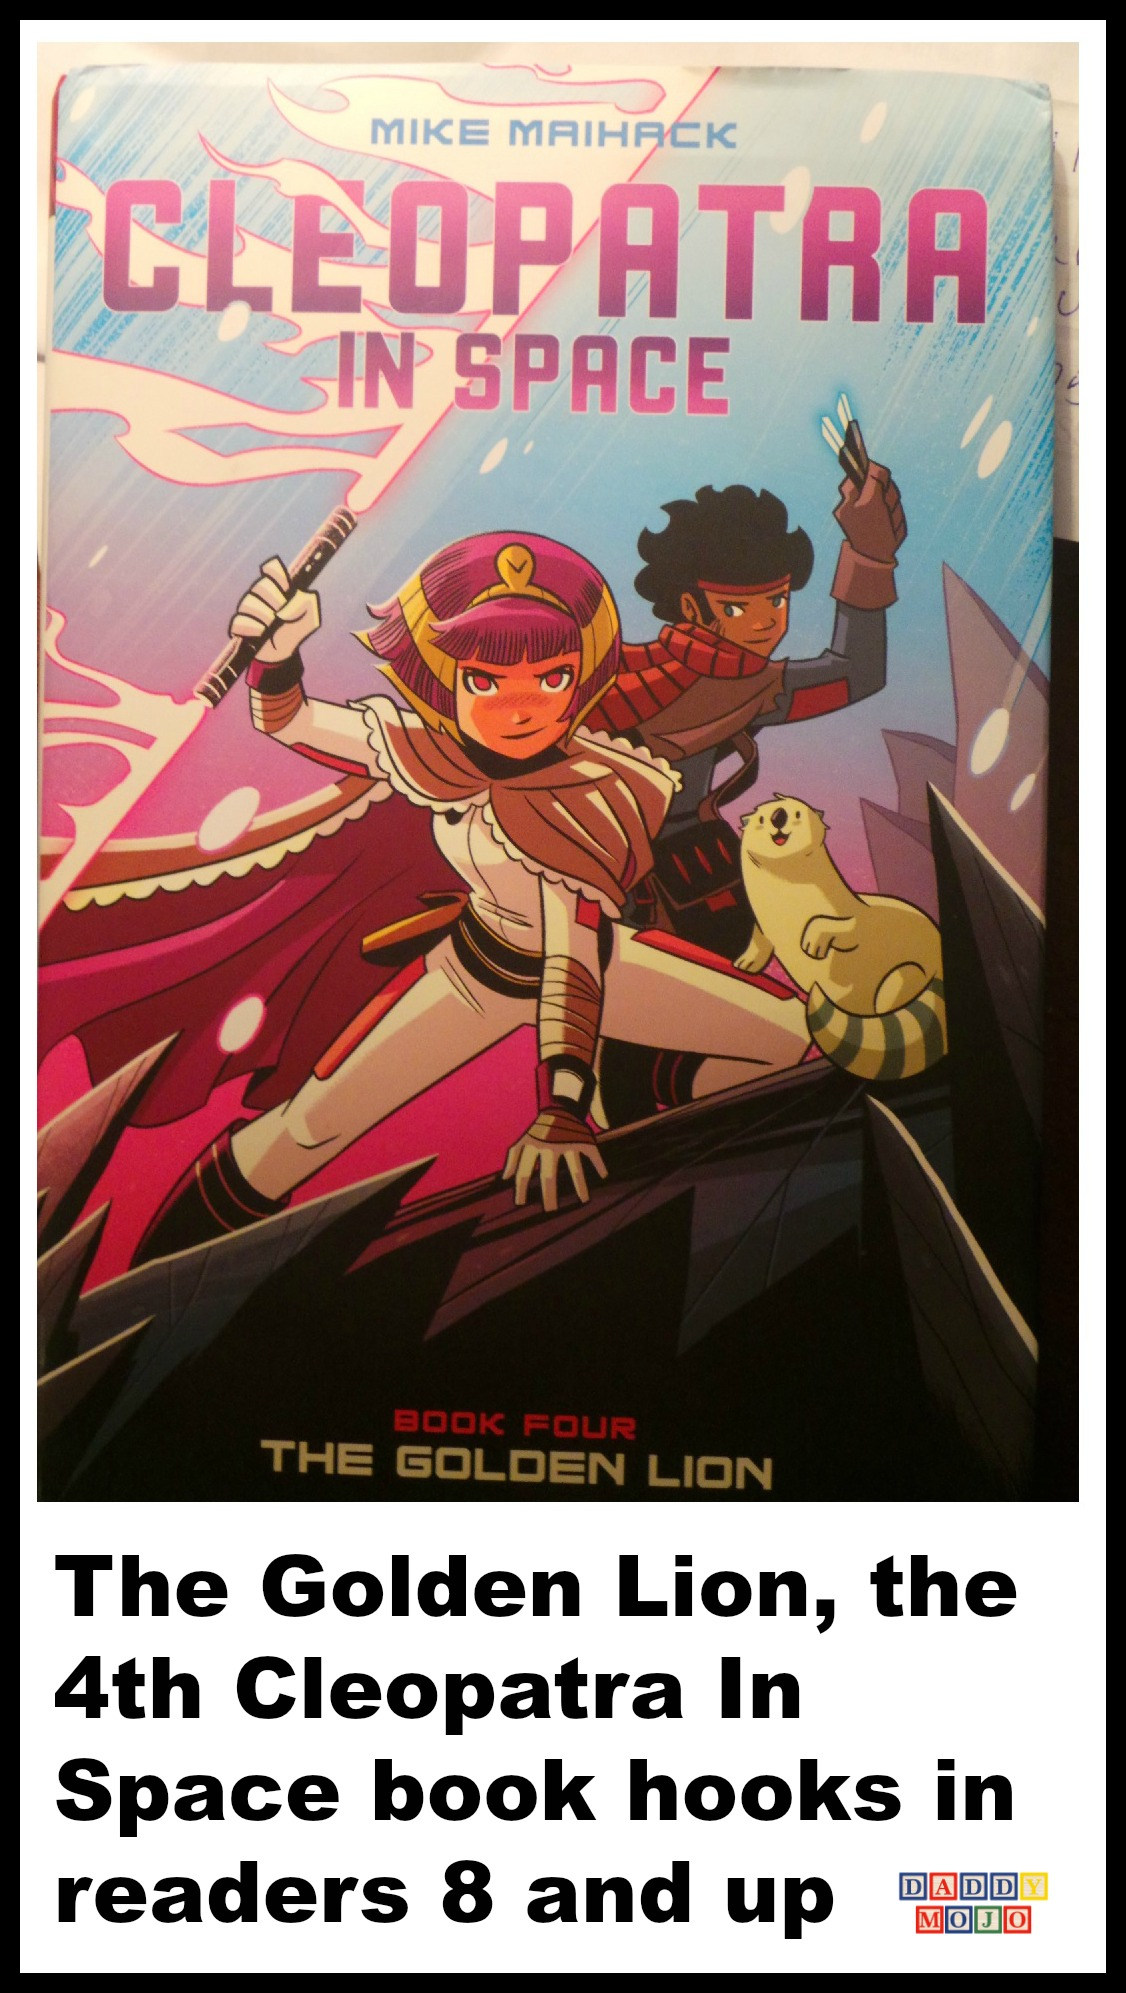 The Golden Lion The 4th Cleopatra In Space Book Hooks In Readers 8 And Up